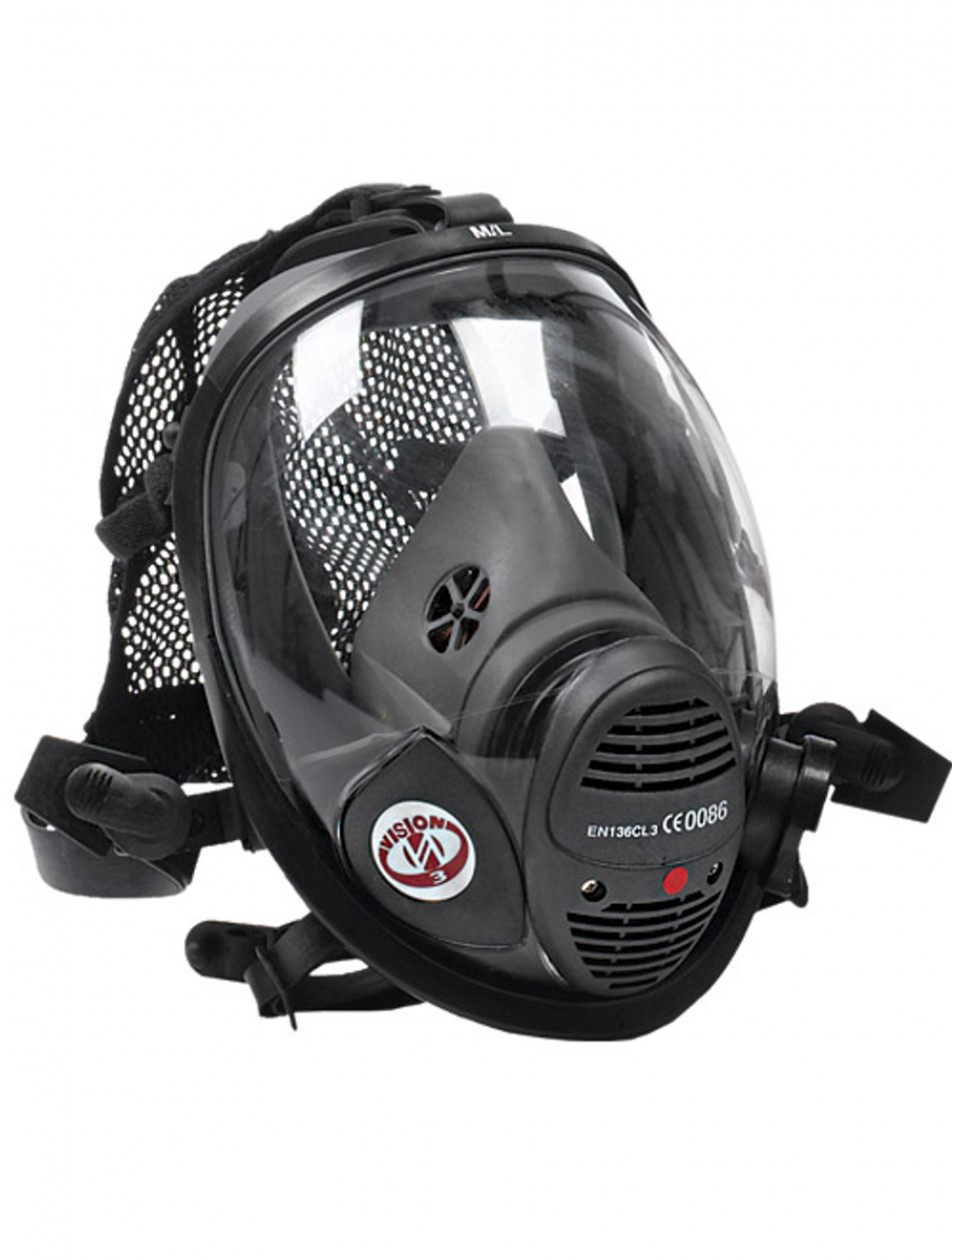 Scott Vision 3 Face Mask